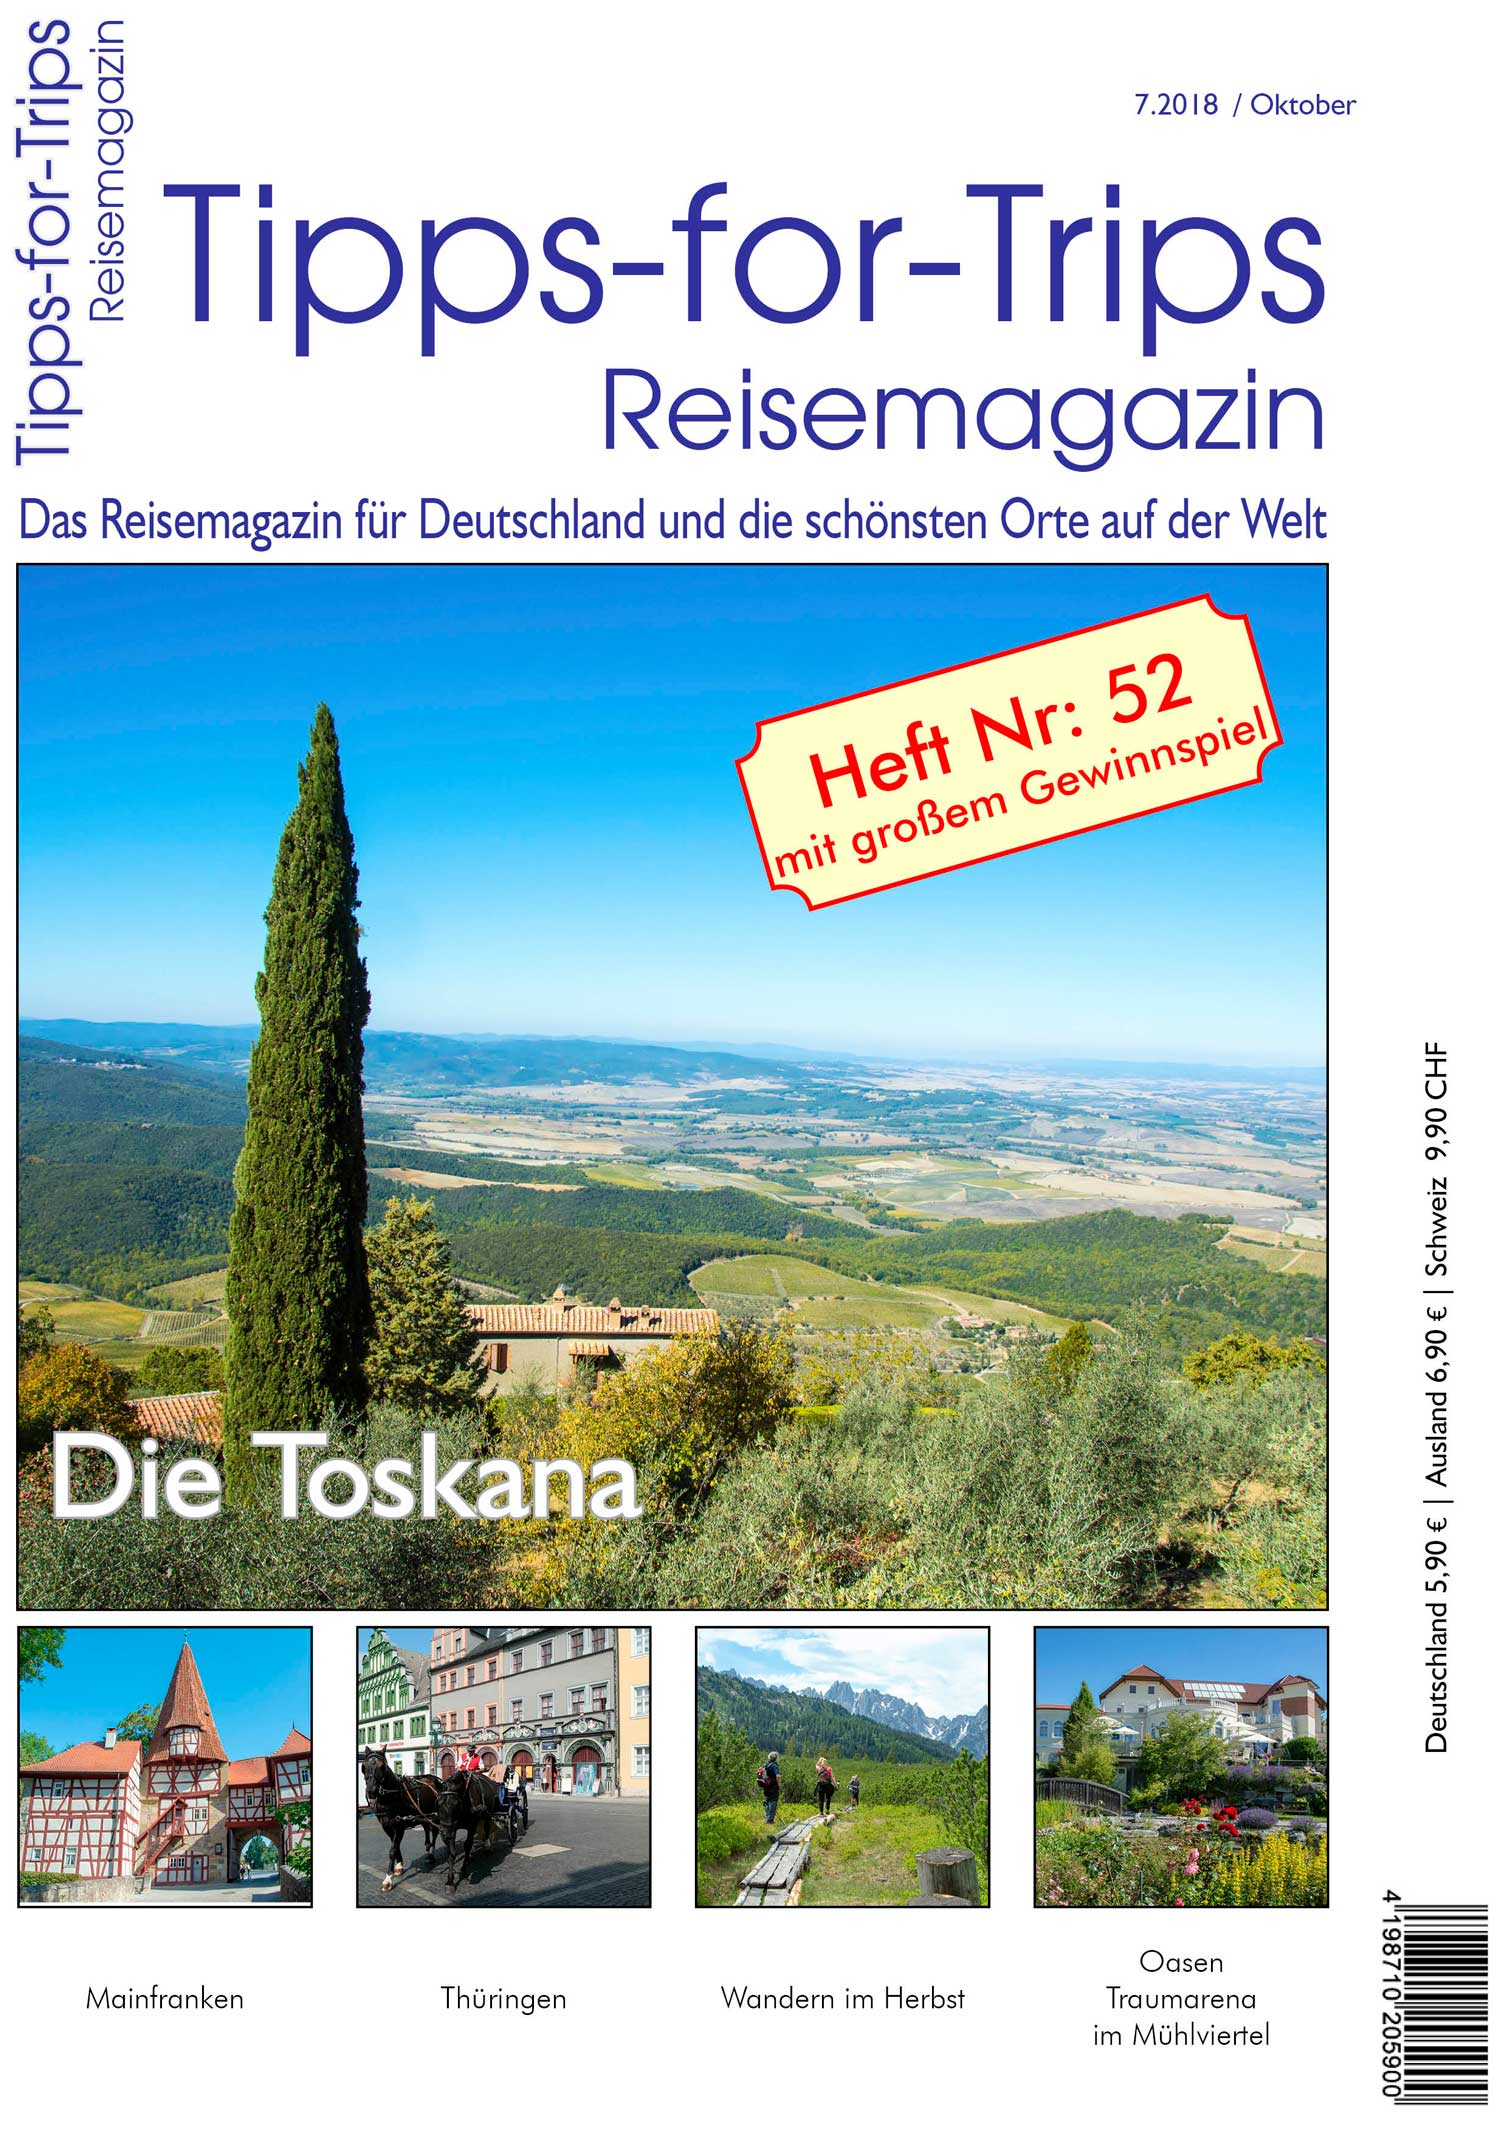 Tipps-for-Trips Heft 7.2018